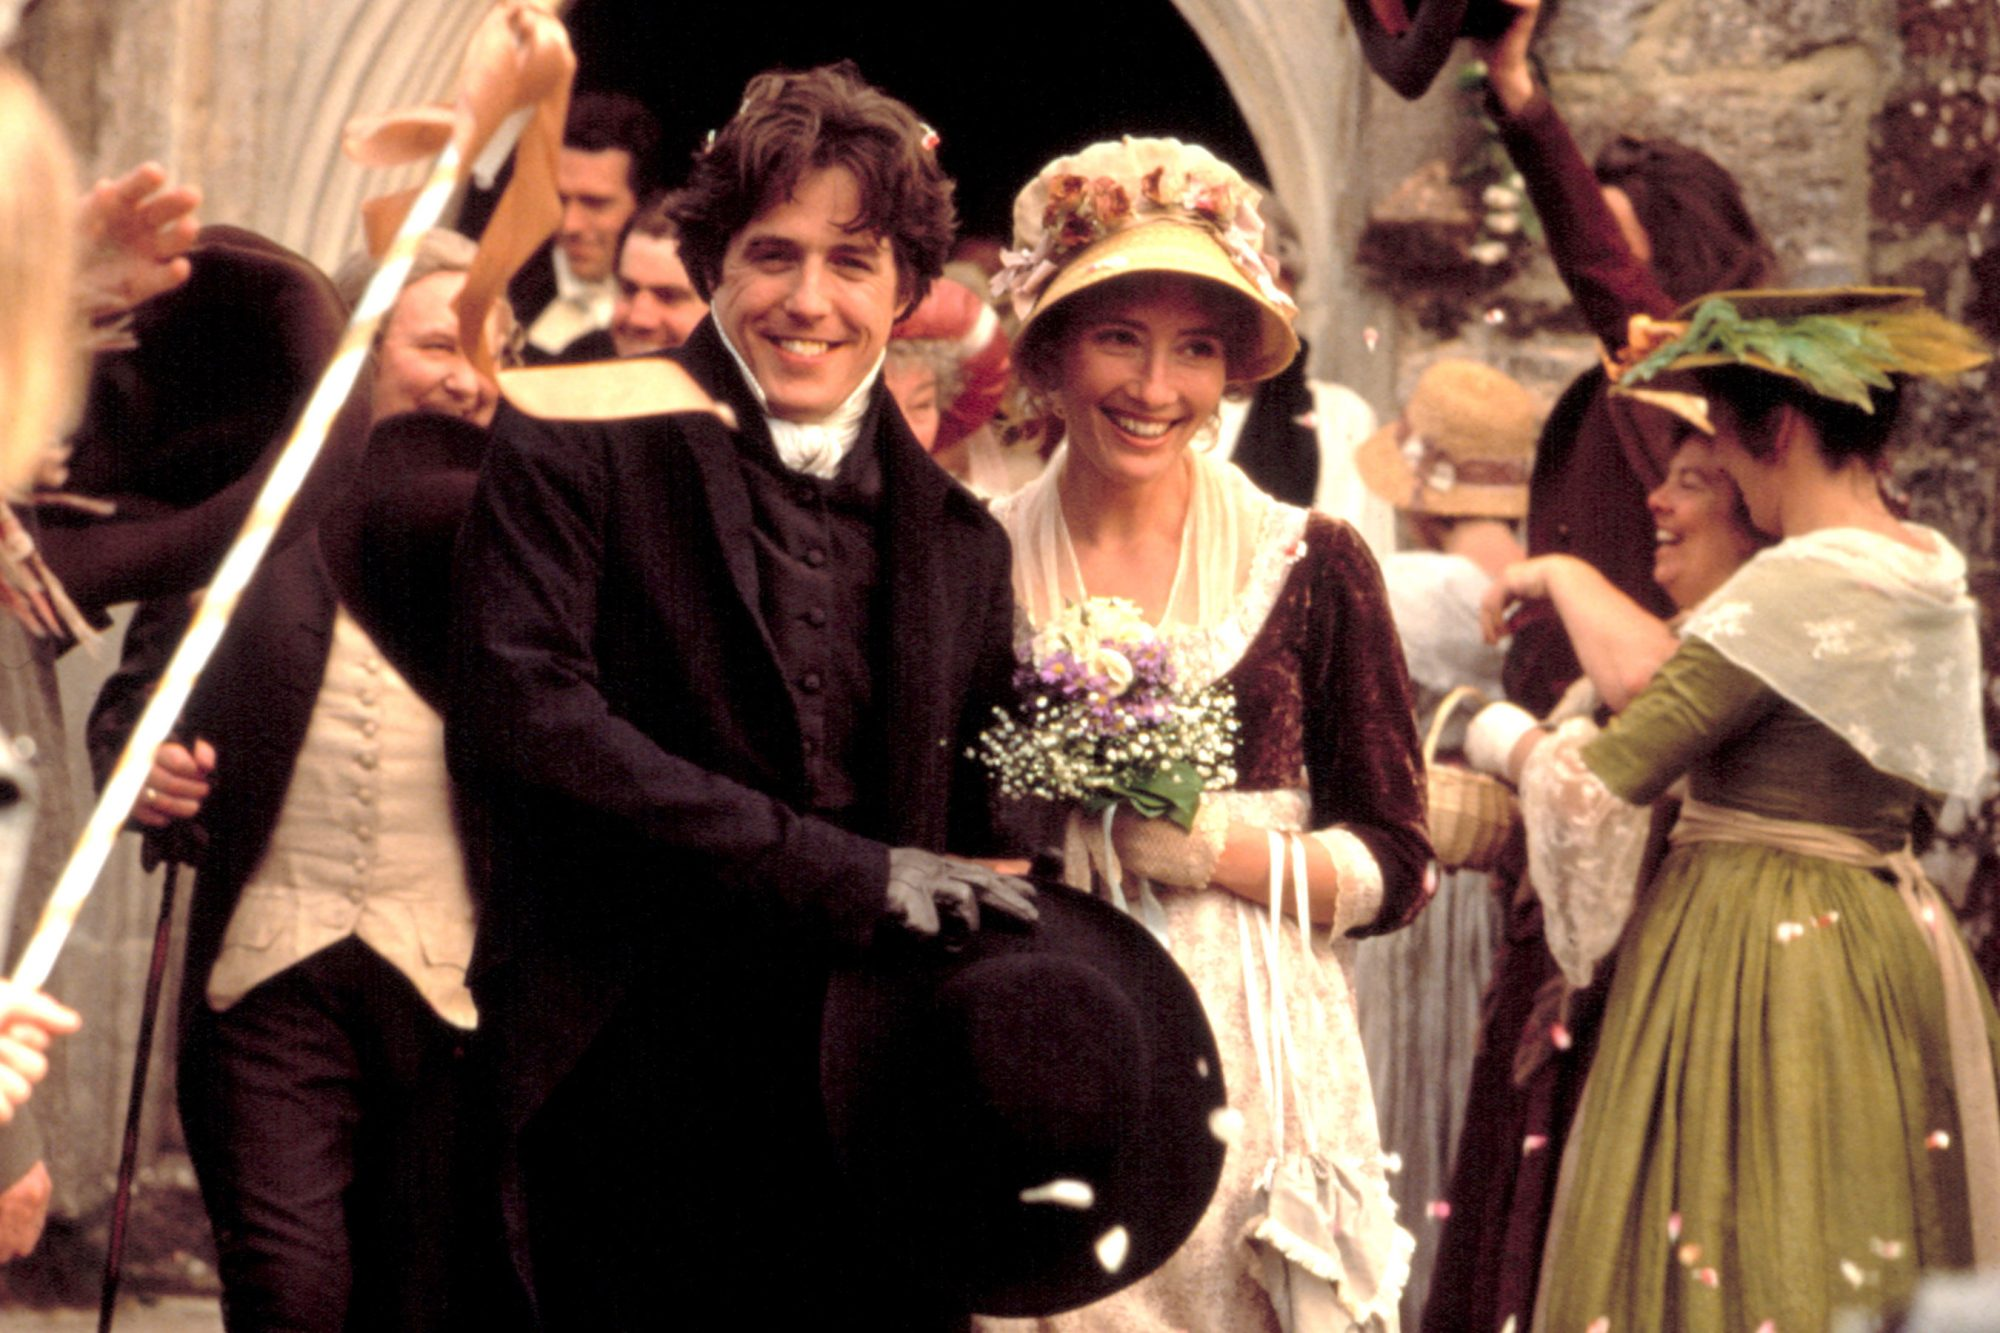 SENSE AND SENSIBILITY, Hugh Grant, Emma Thompson, 1995